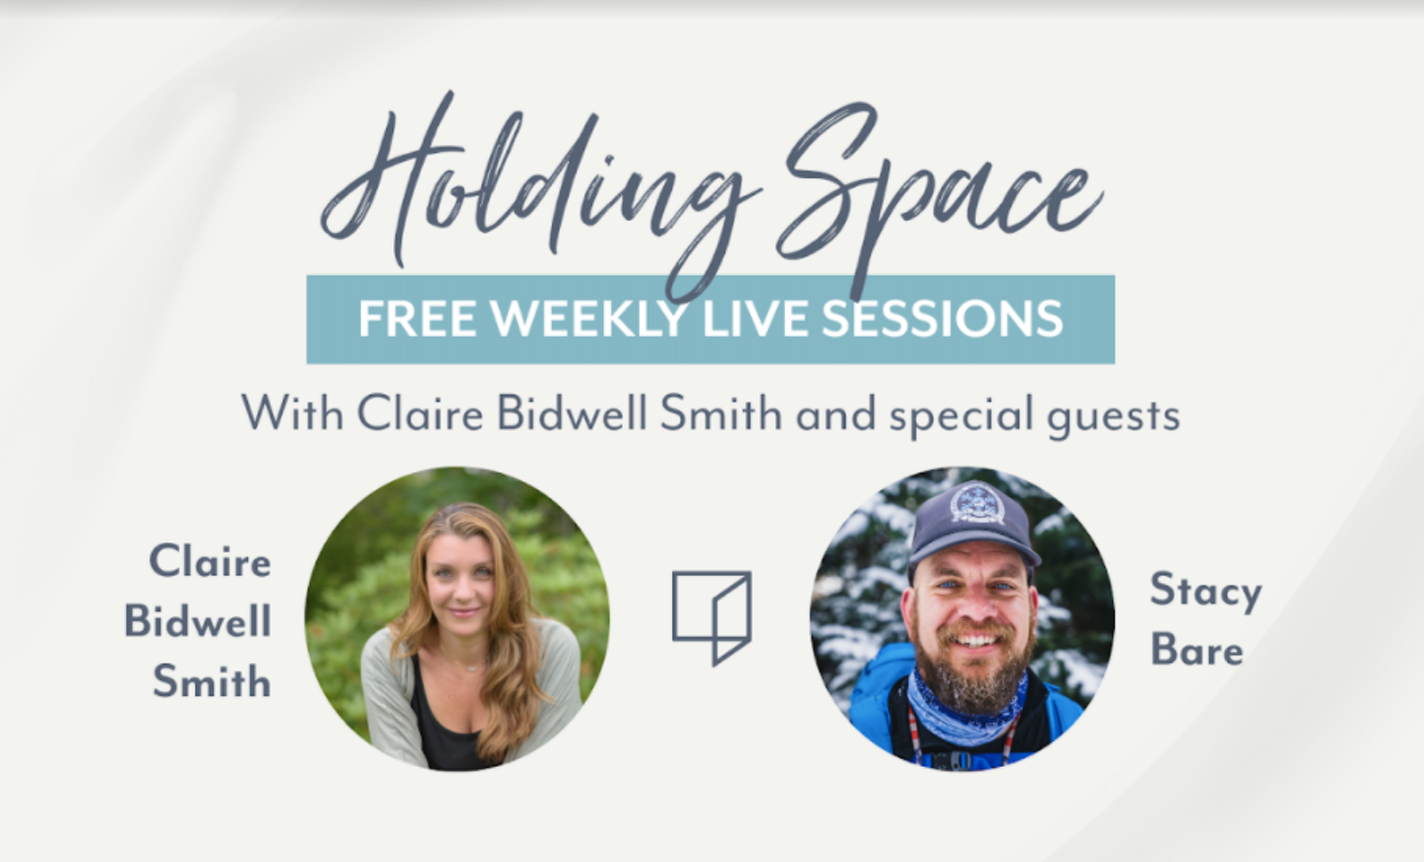 Holding Space with Claire Bidwell Smith & Stacy Bare